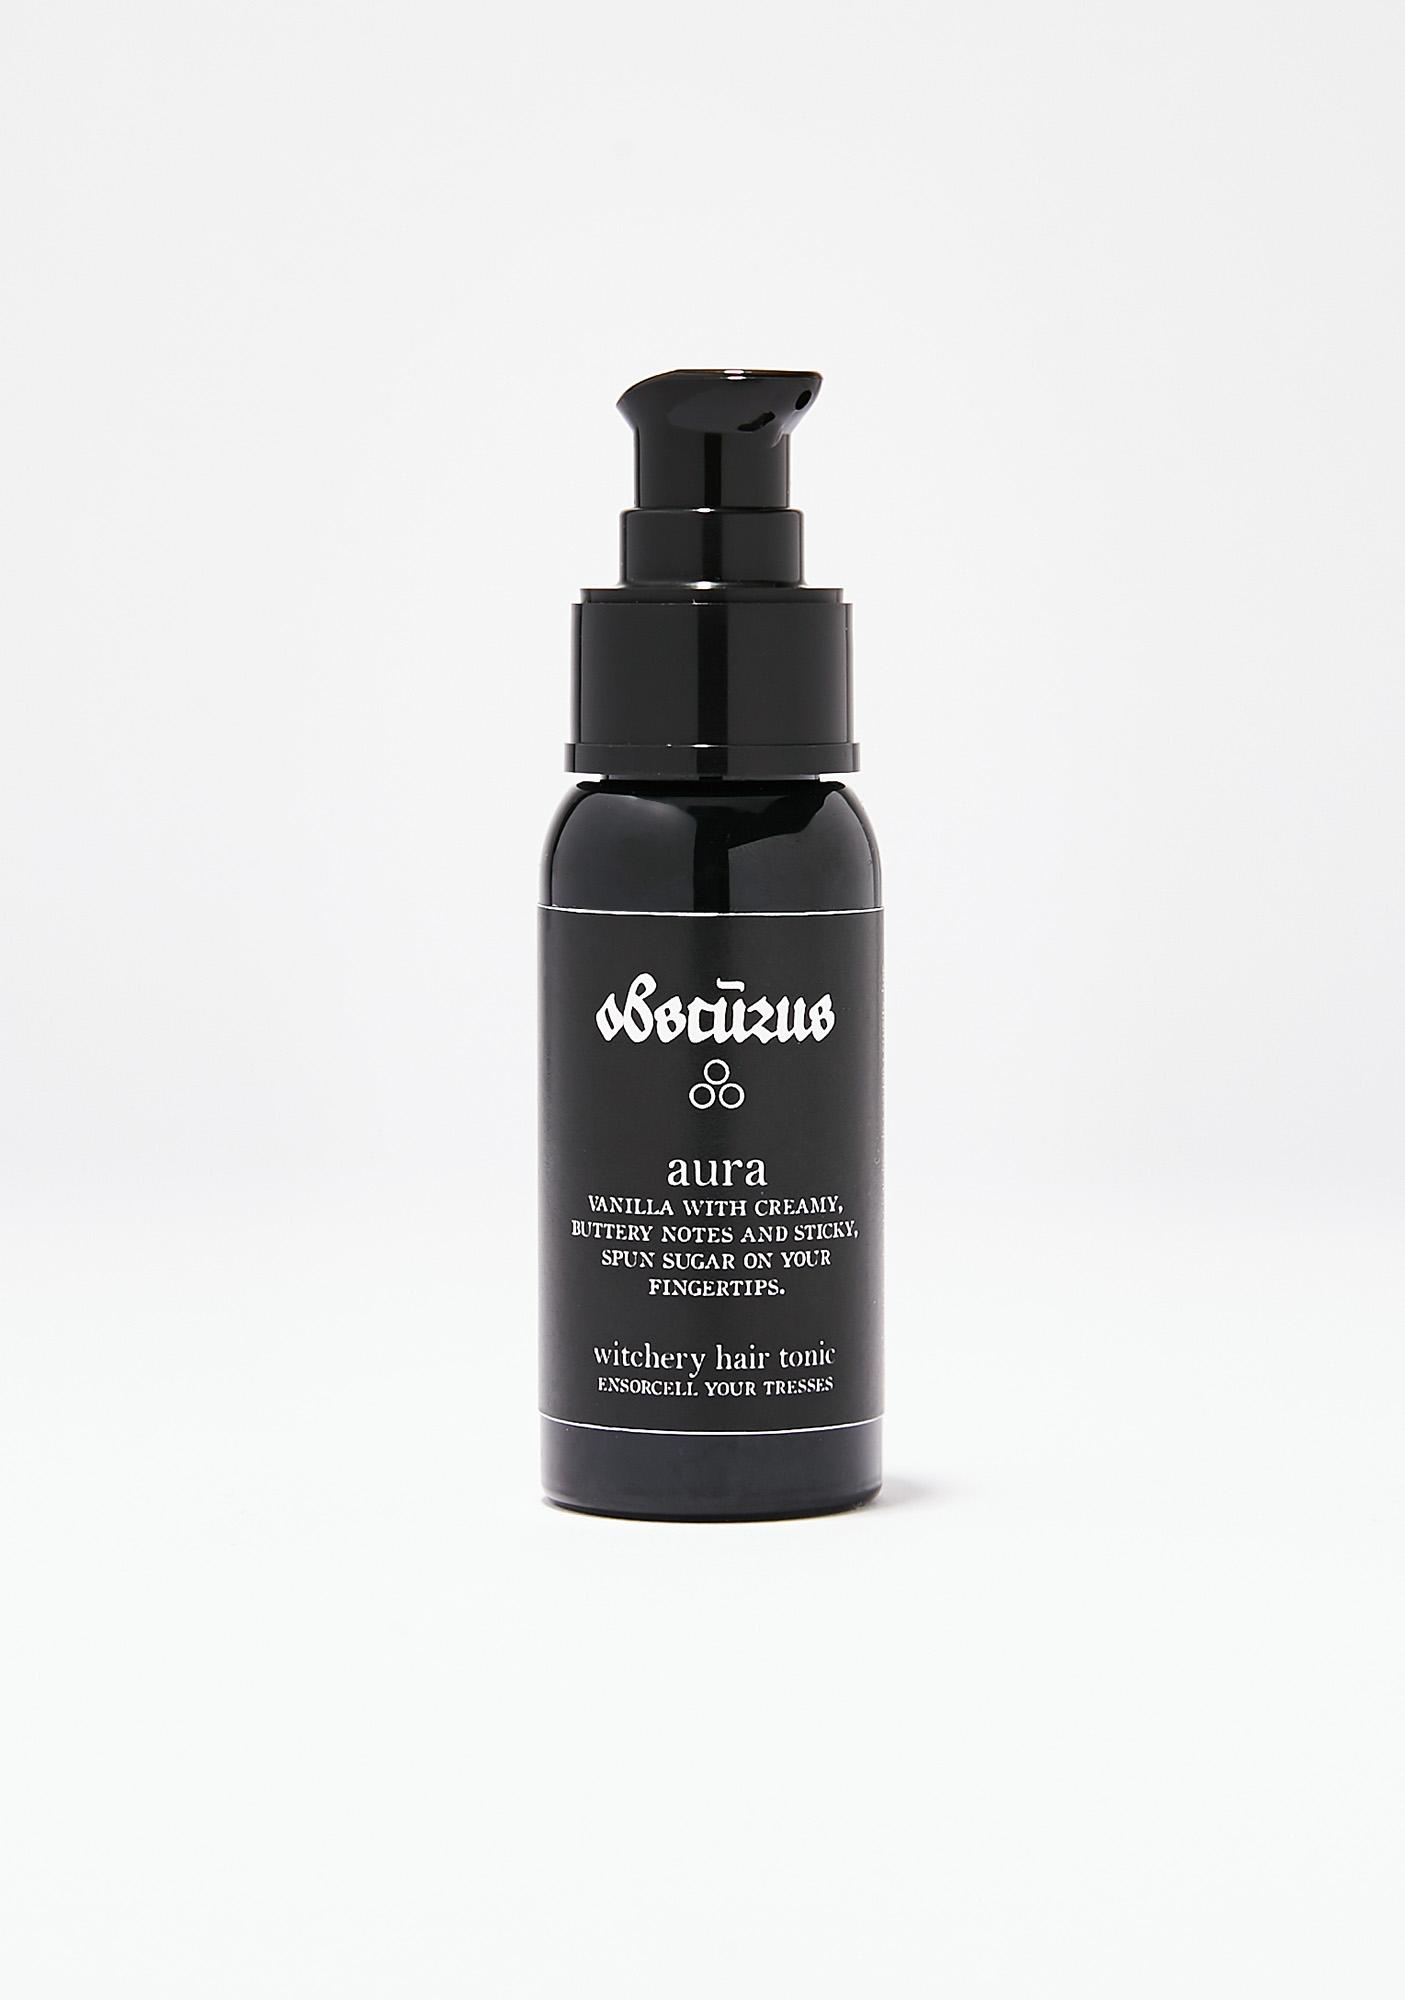 Obscurus Aura Witchery Hair Tonic